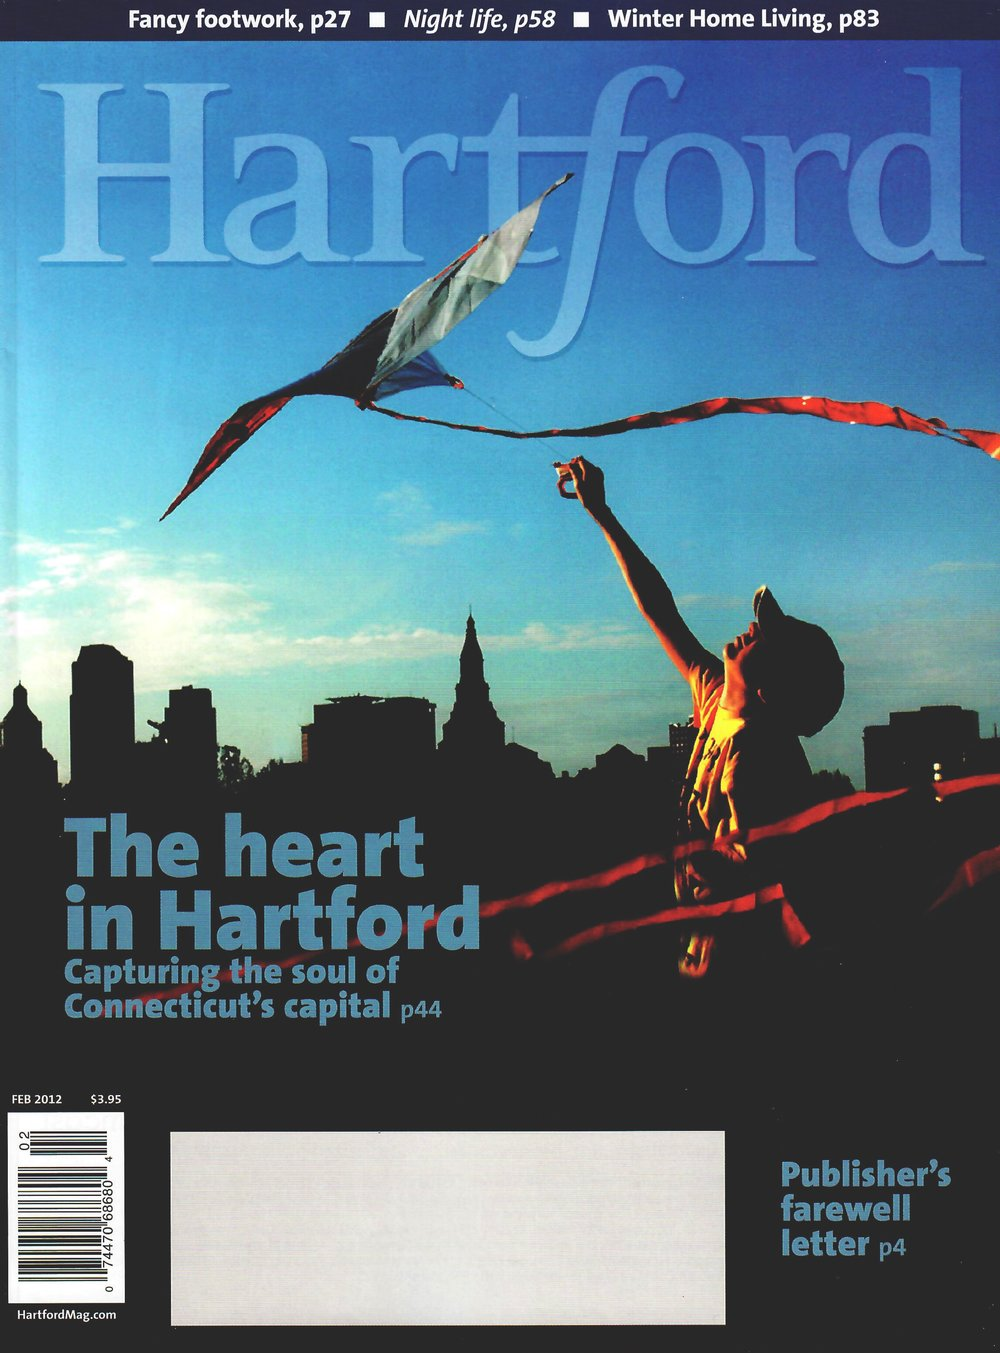 Hartford Magazine, 2012